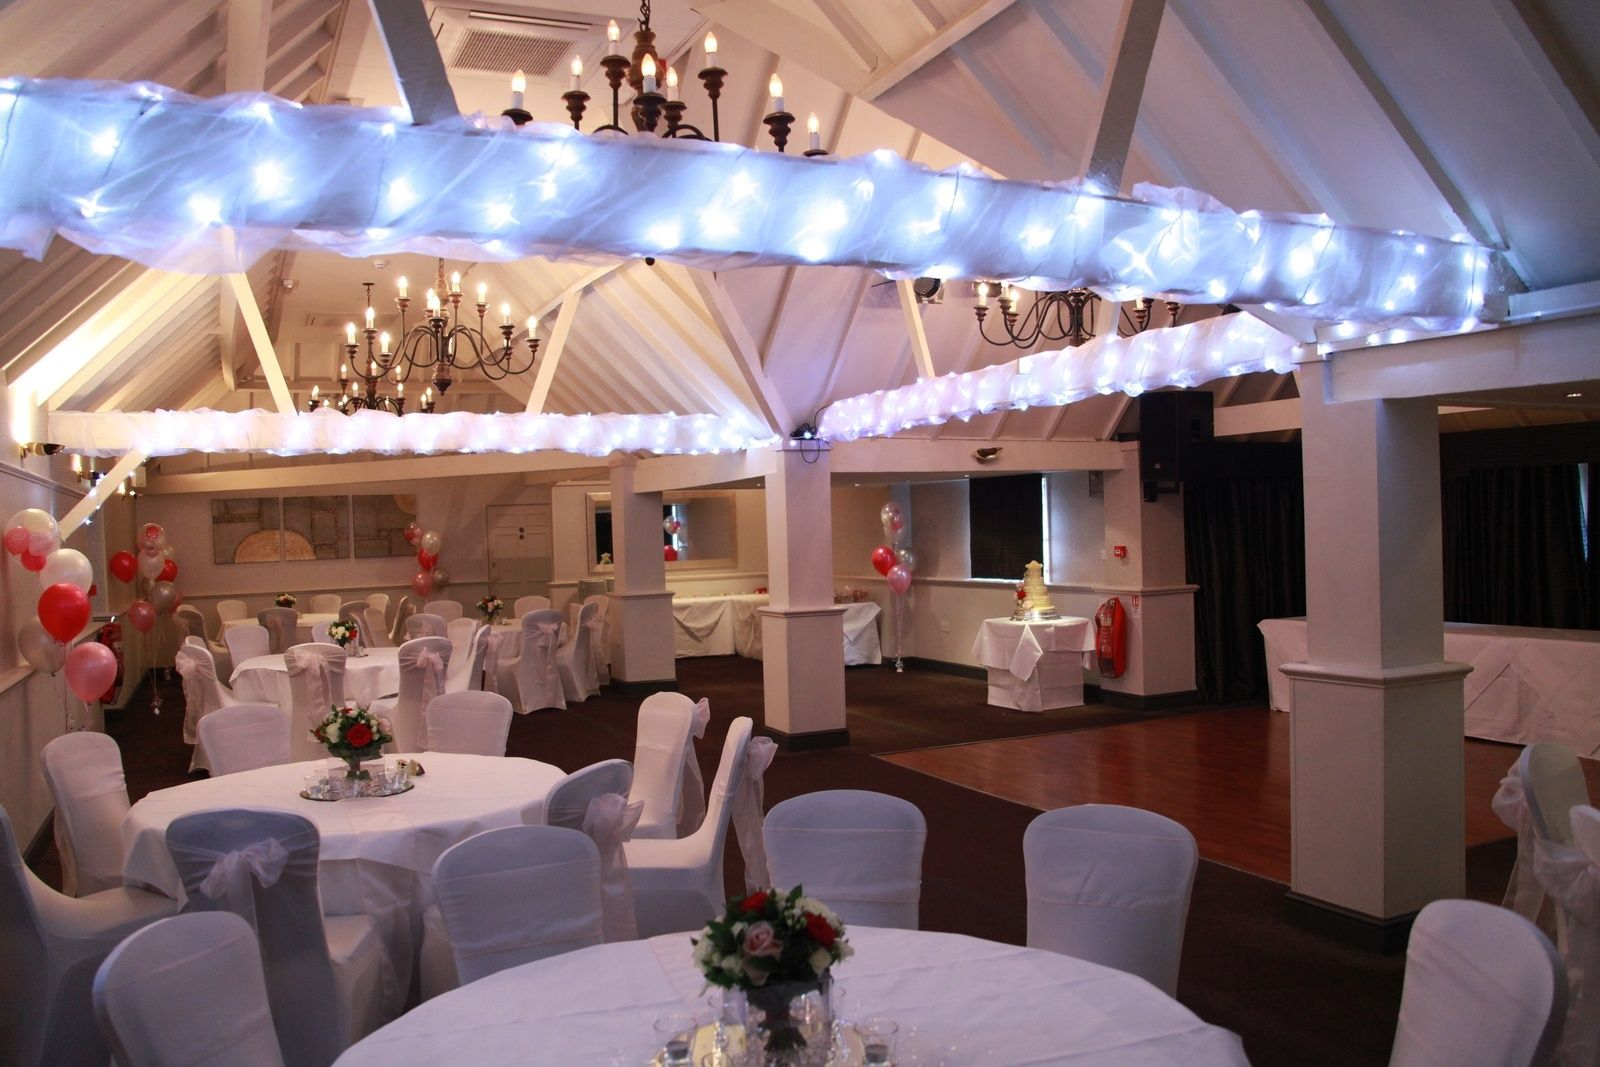 Check Out Rowhill Grange Hotel And Utopia Spa Wedding Venue